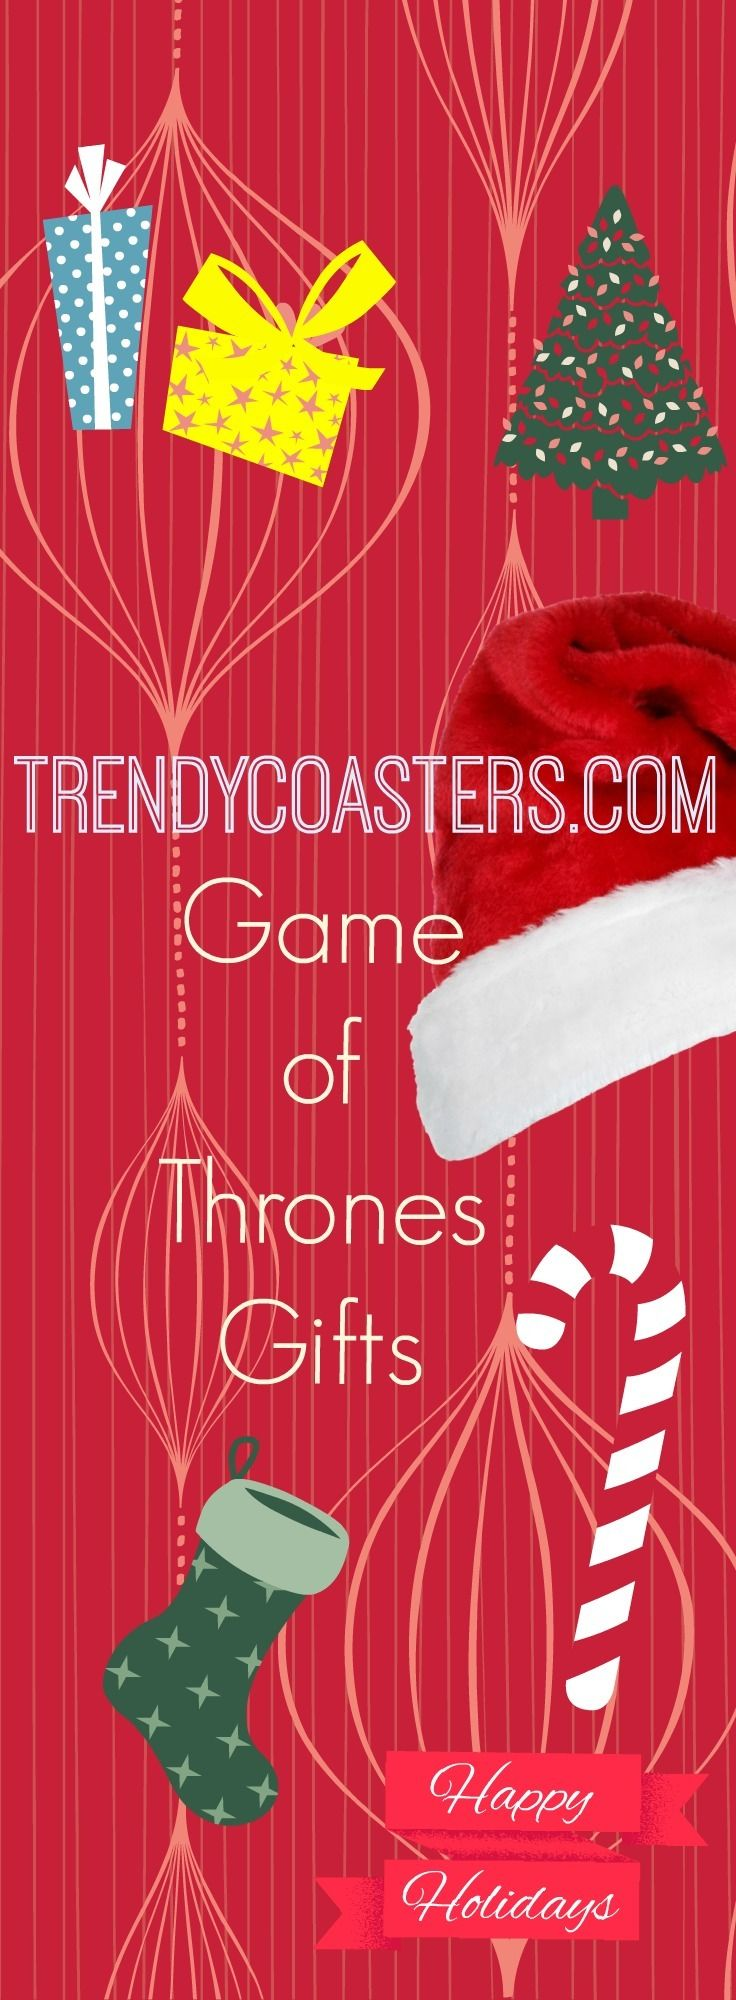 The best place to buy Game of Thrones gifts for the holidays. Trendycoasters.com